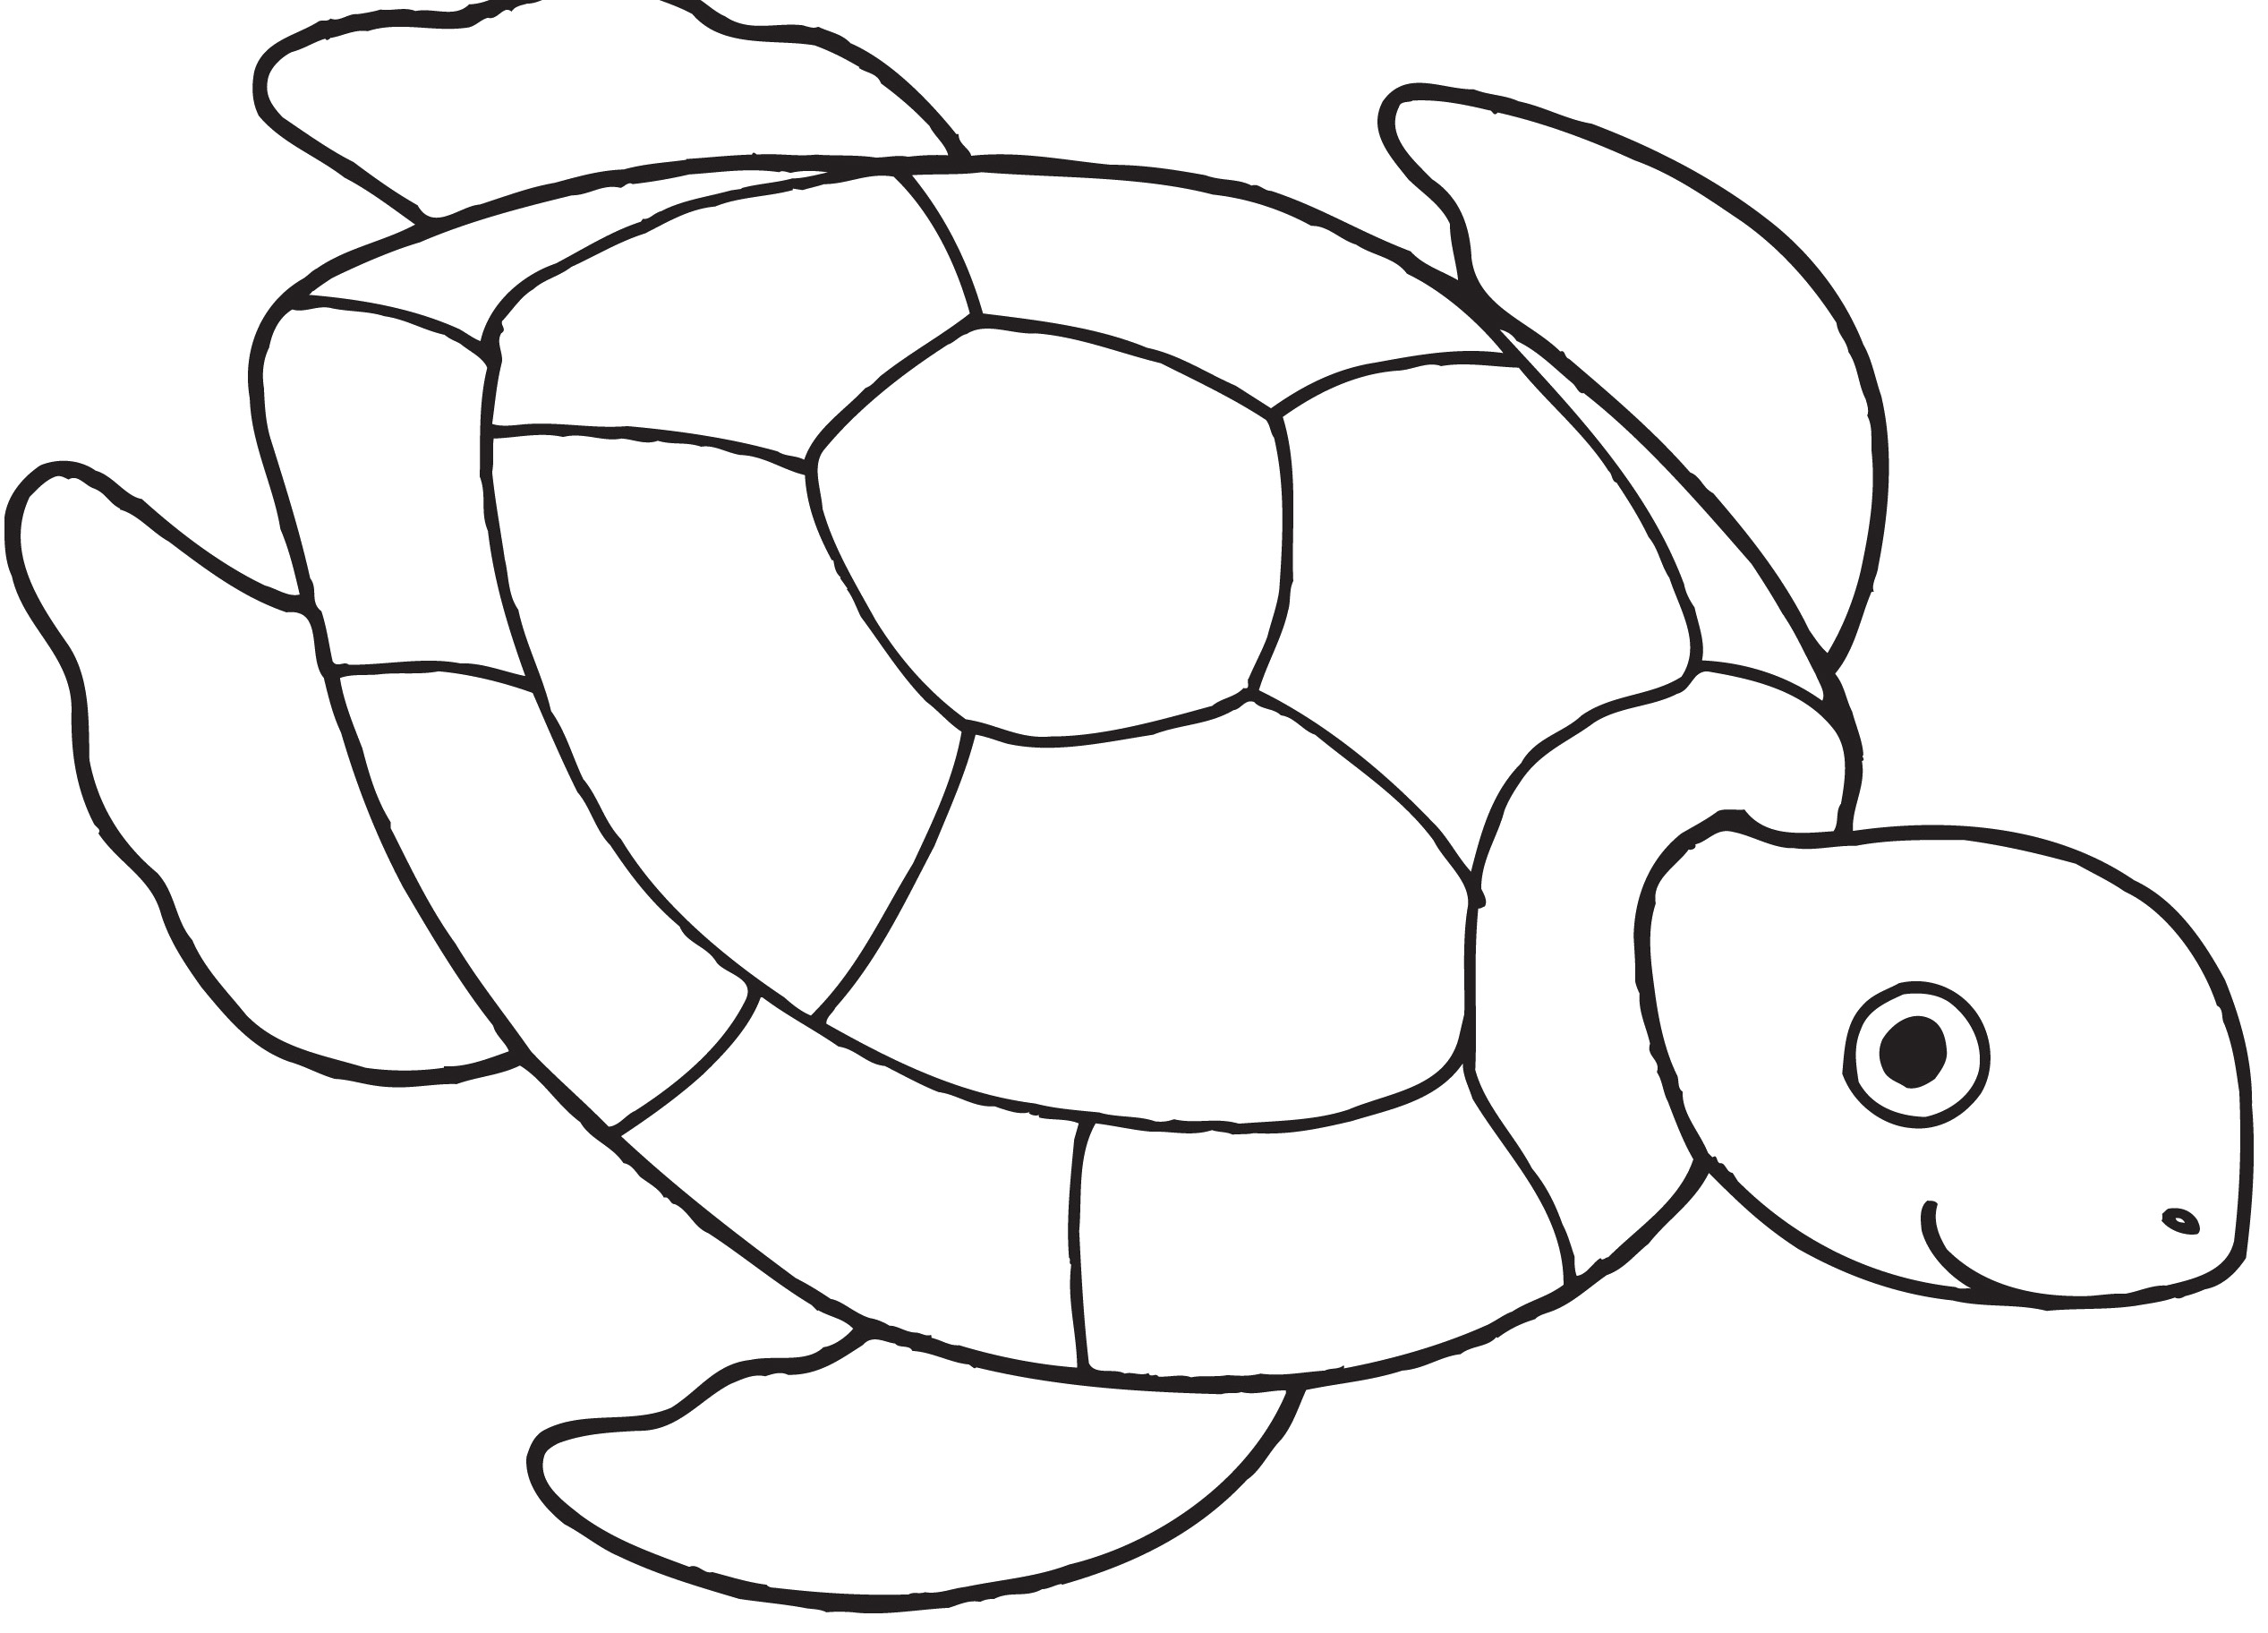 Turtle Coloring Pages | Free download best Turtle Coloring Pages on ...